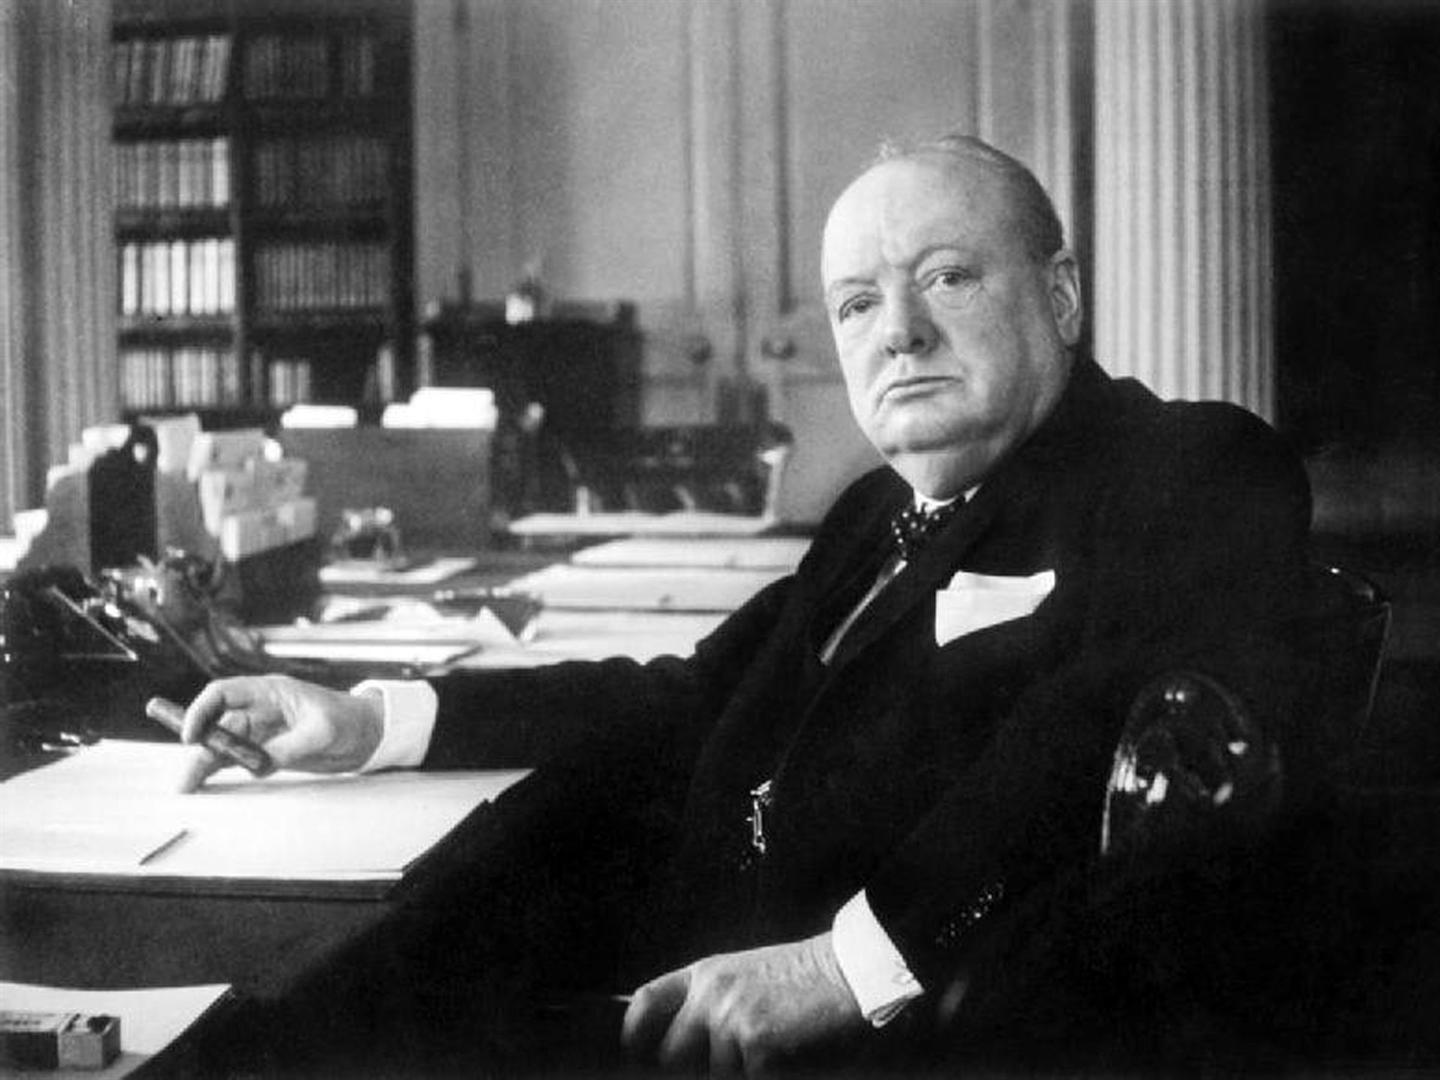 If you are going through hell, keep going. - Winston Churchill